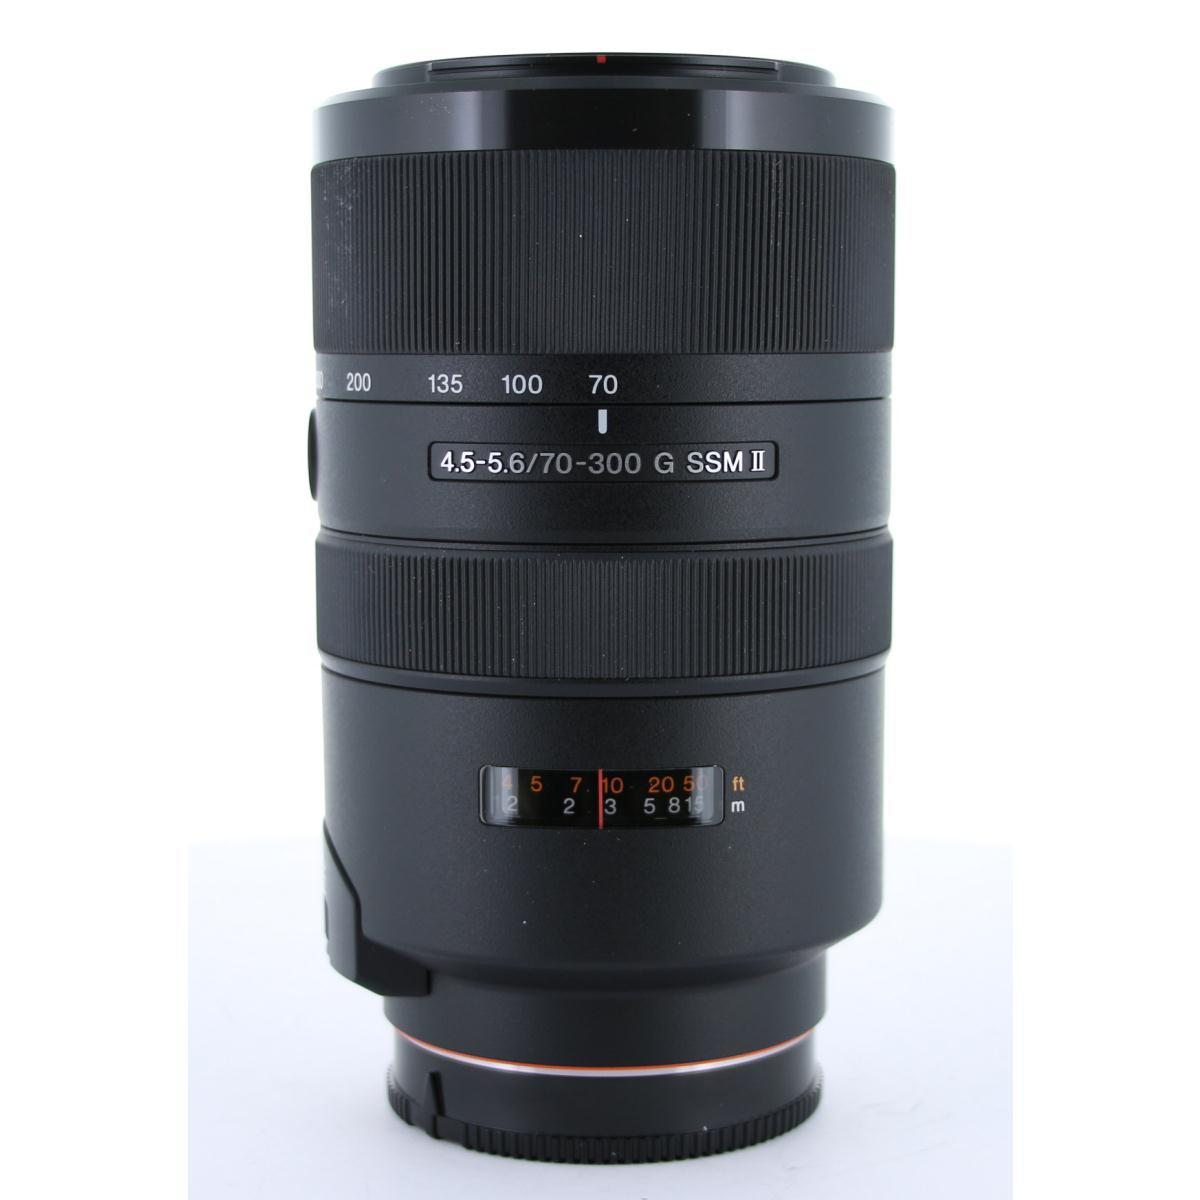 SONY 70-300mm F4.5-5.6G SSMII【中古】